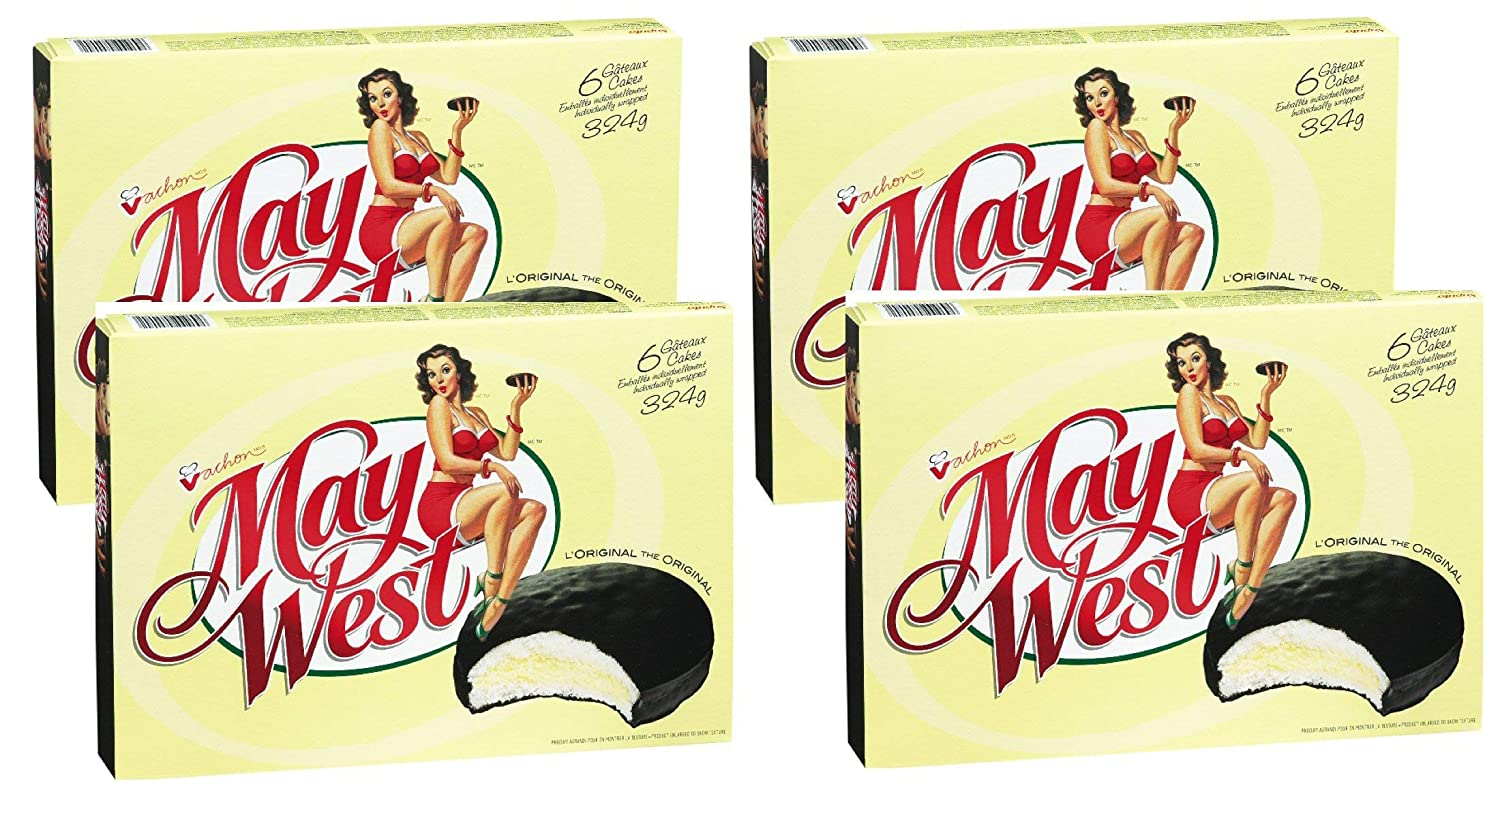 (4 Box) 6 Cakes Vachon the Original May West Cakes 324 grams Each - Canadian